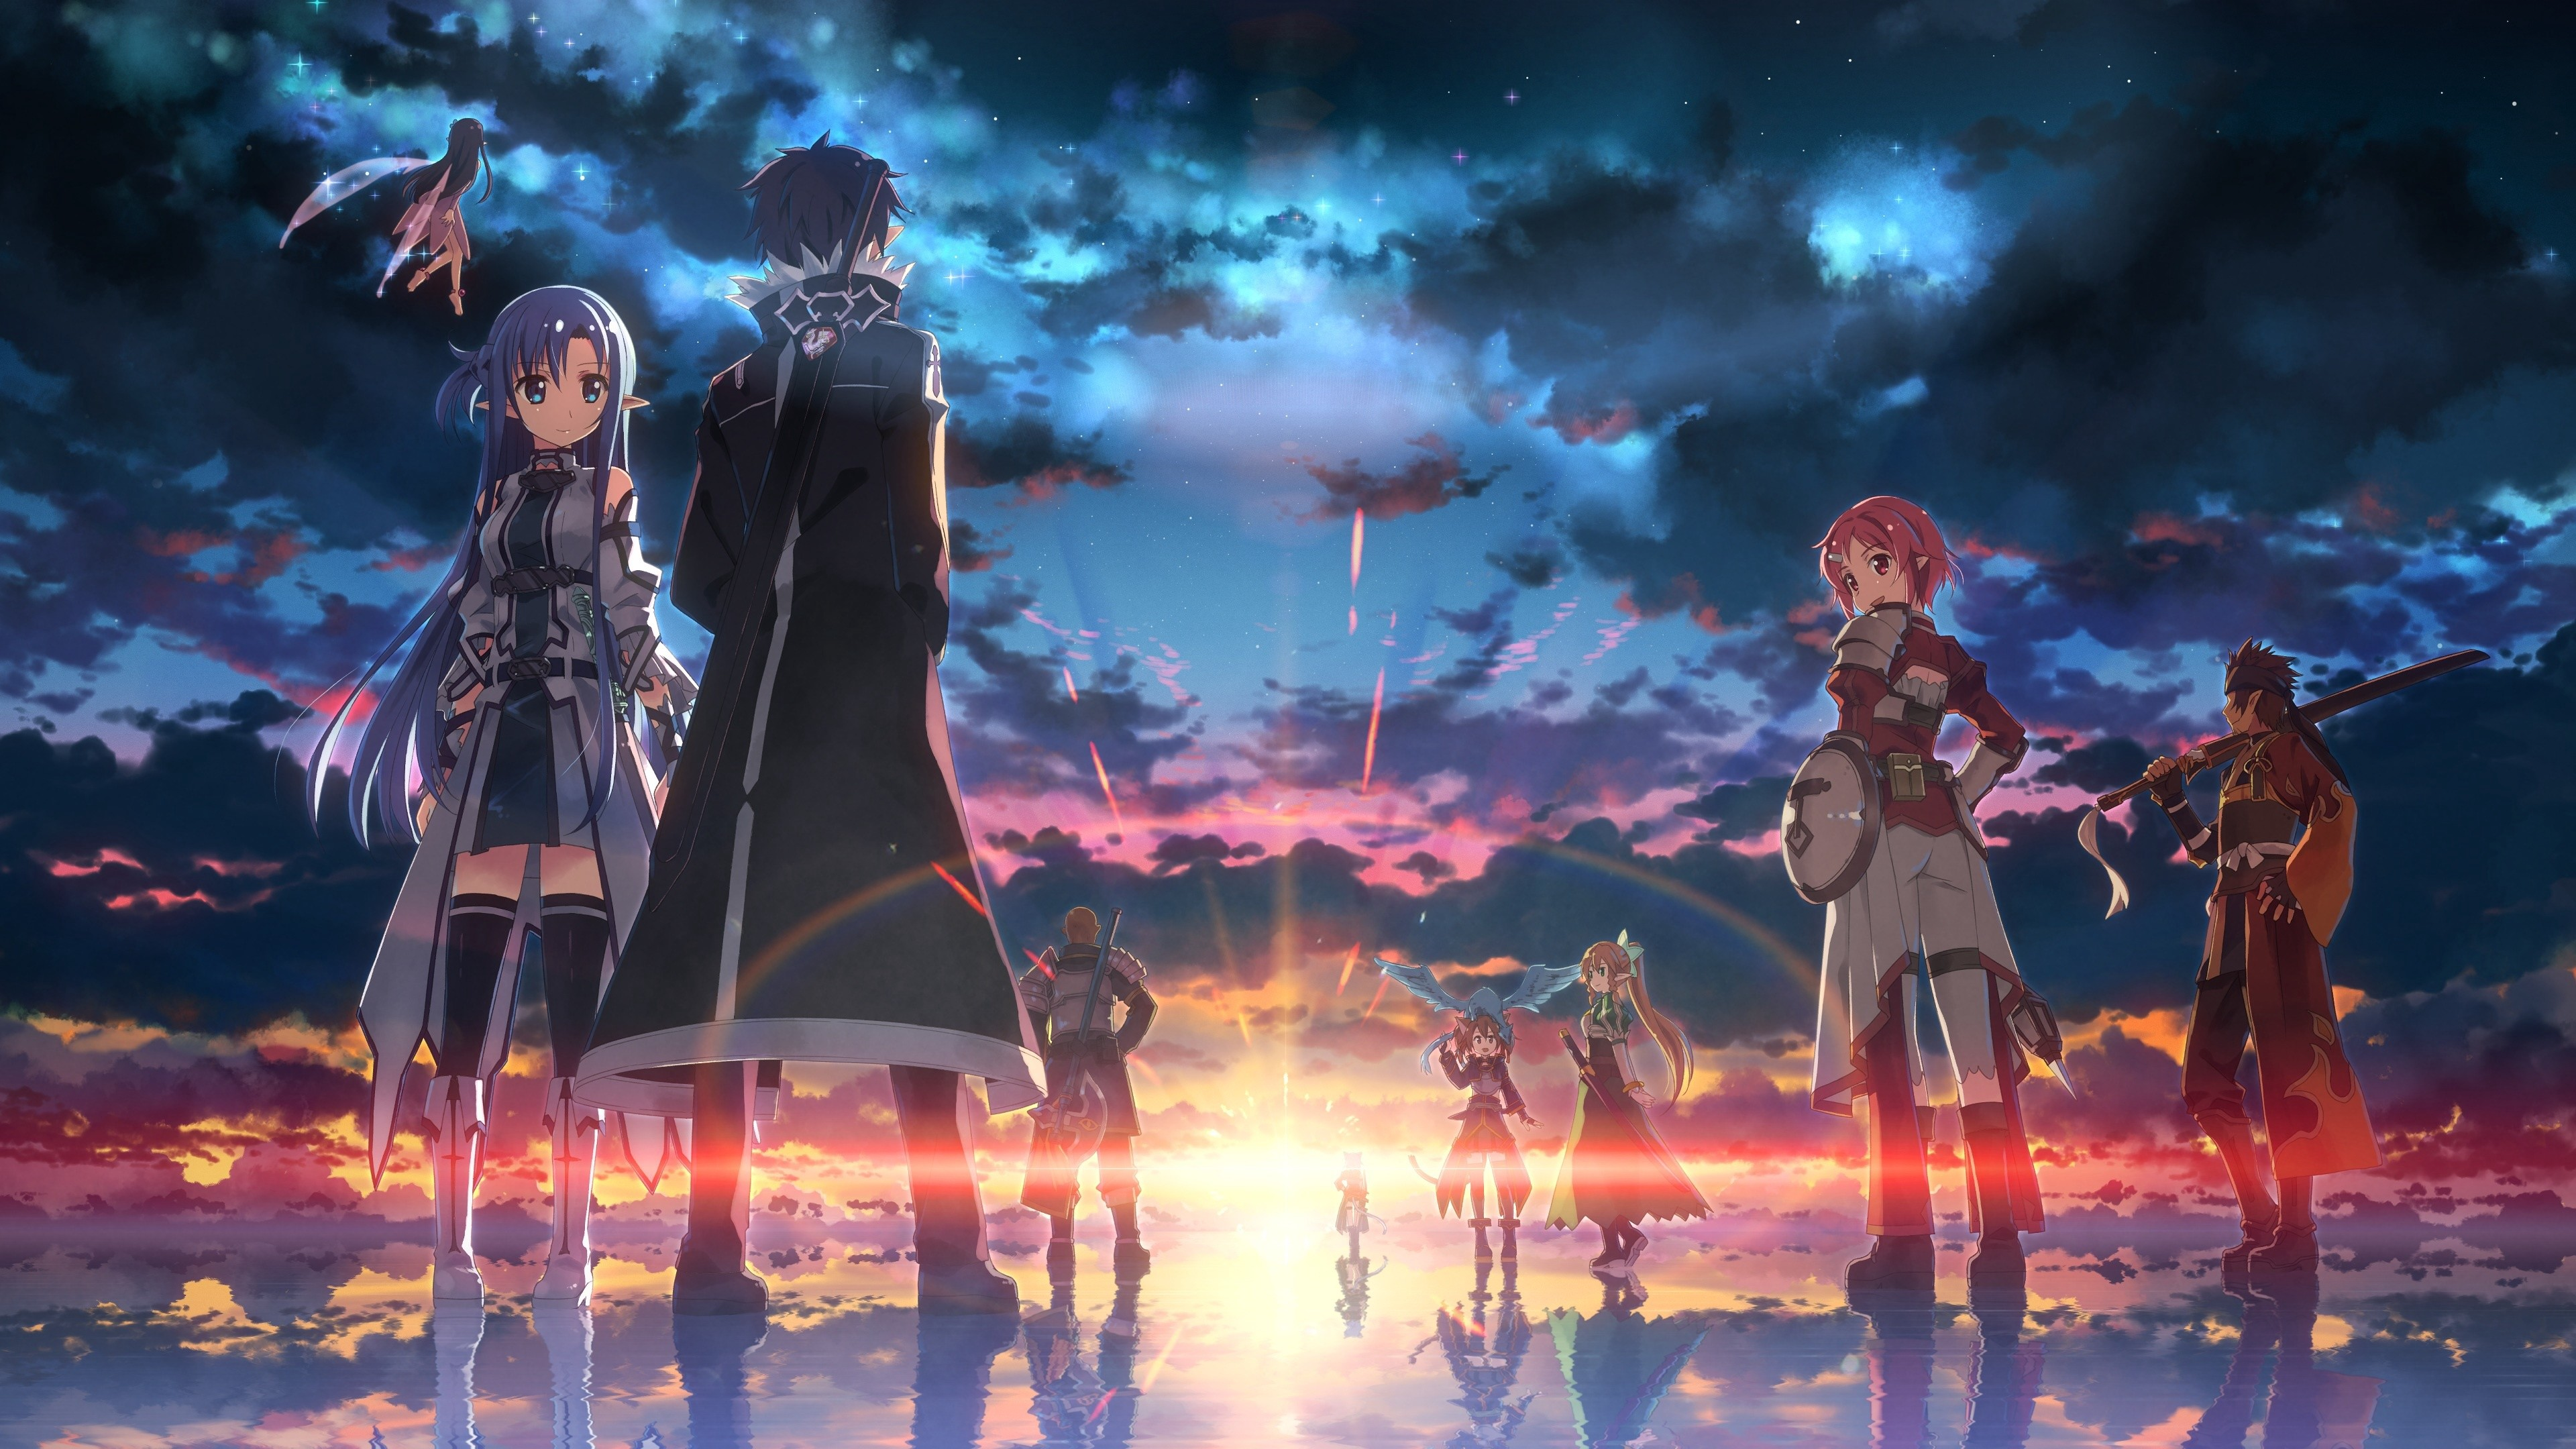 Sao HD Wallpapers (75+ images)